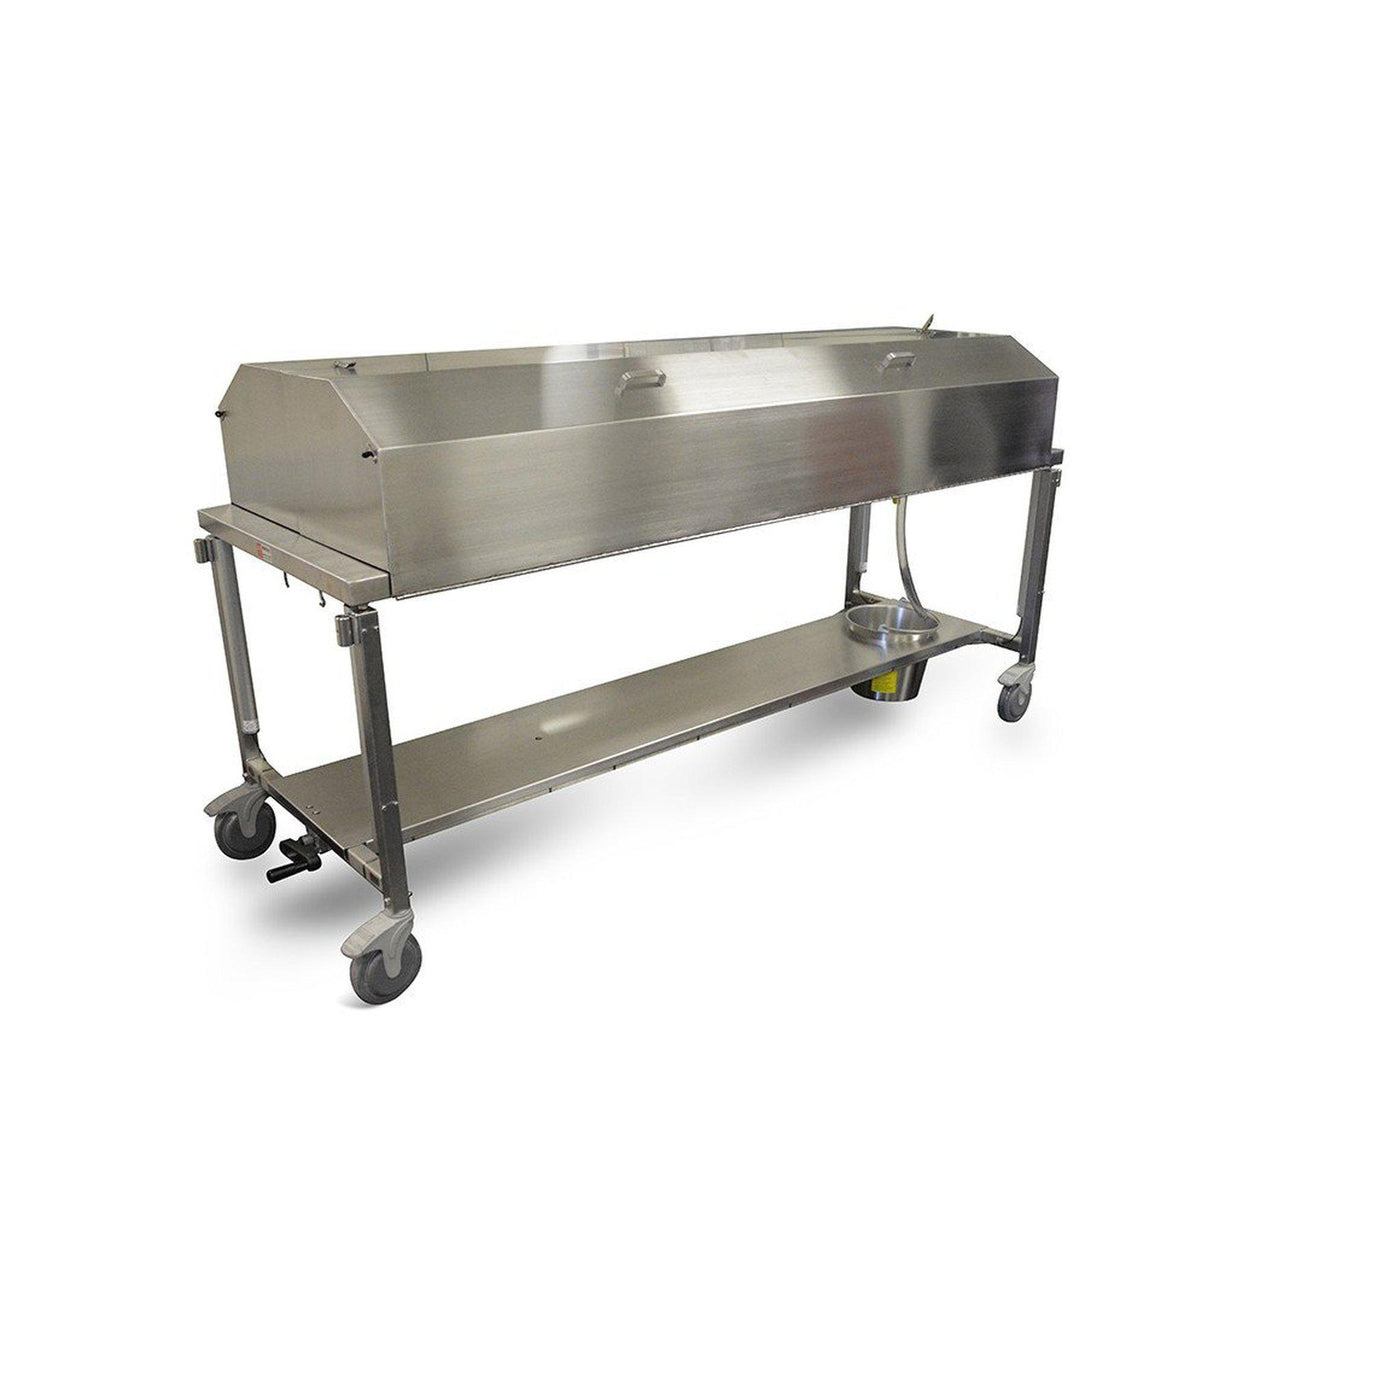 Dissection Table with Hood-Anatomy Dissection Tables-Mortech Manufacturing Company Inc. Quality Stainless Steel Autopsy, Morgue, Funeral Home, Necropsy, Veterinary / Anatomy, Dissection Equipment and Accessories